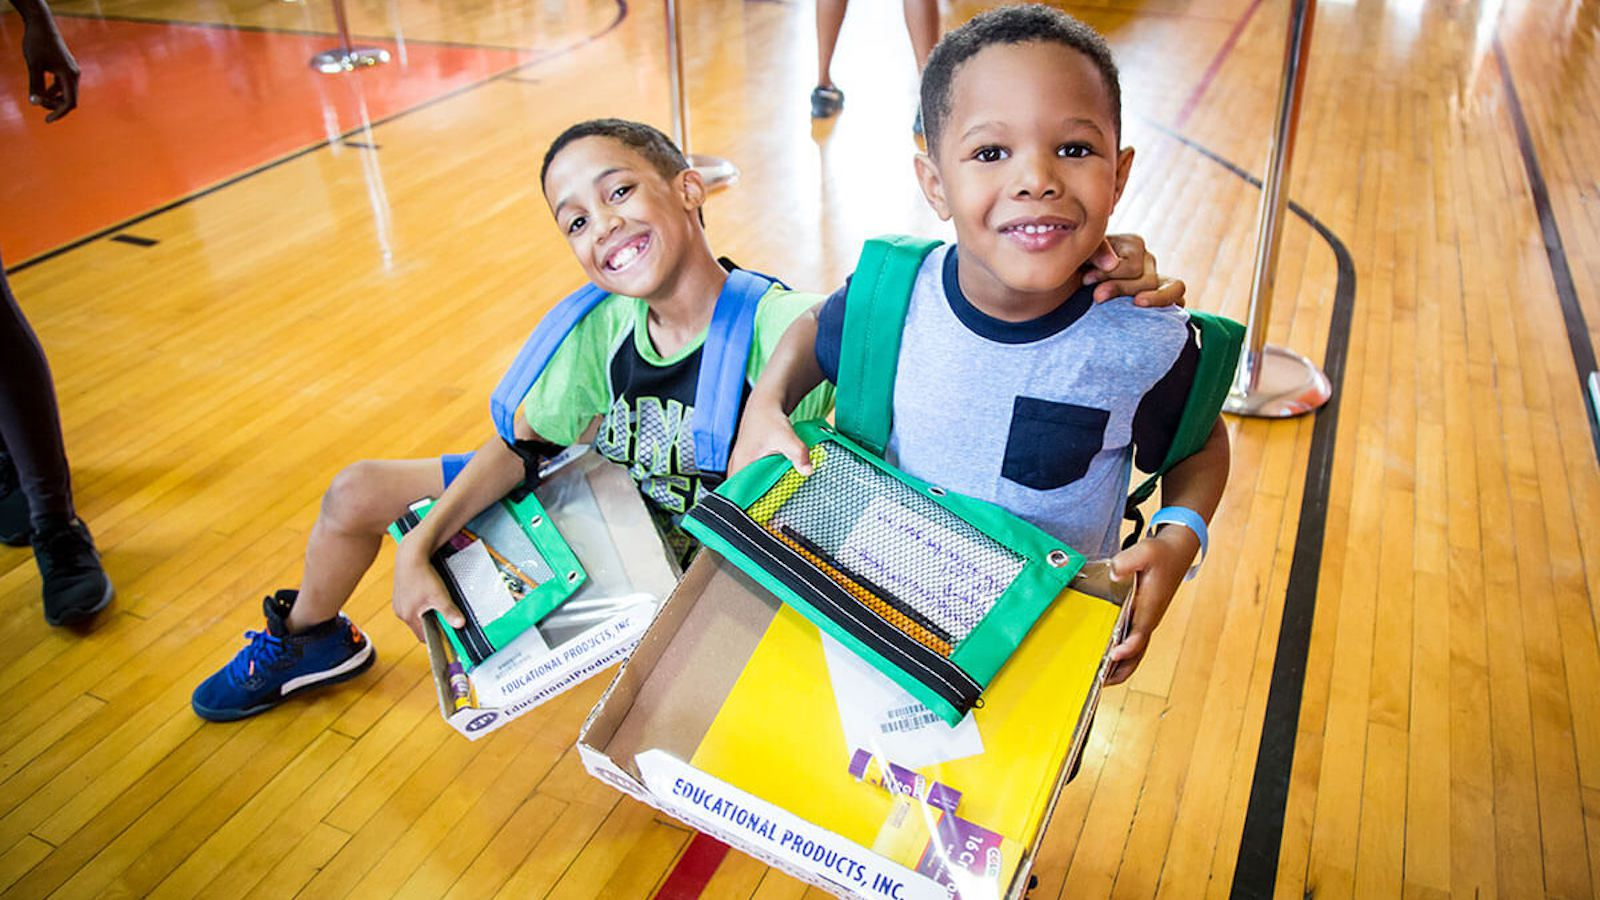 School supplies and uniforms help kids start the school year with confidence.